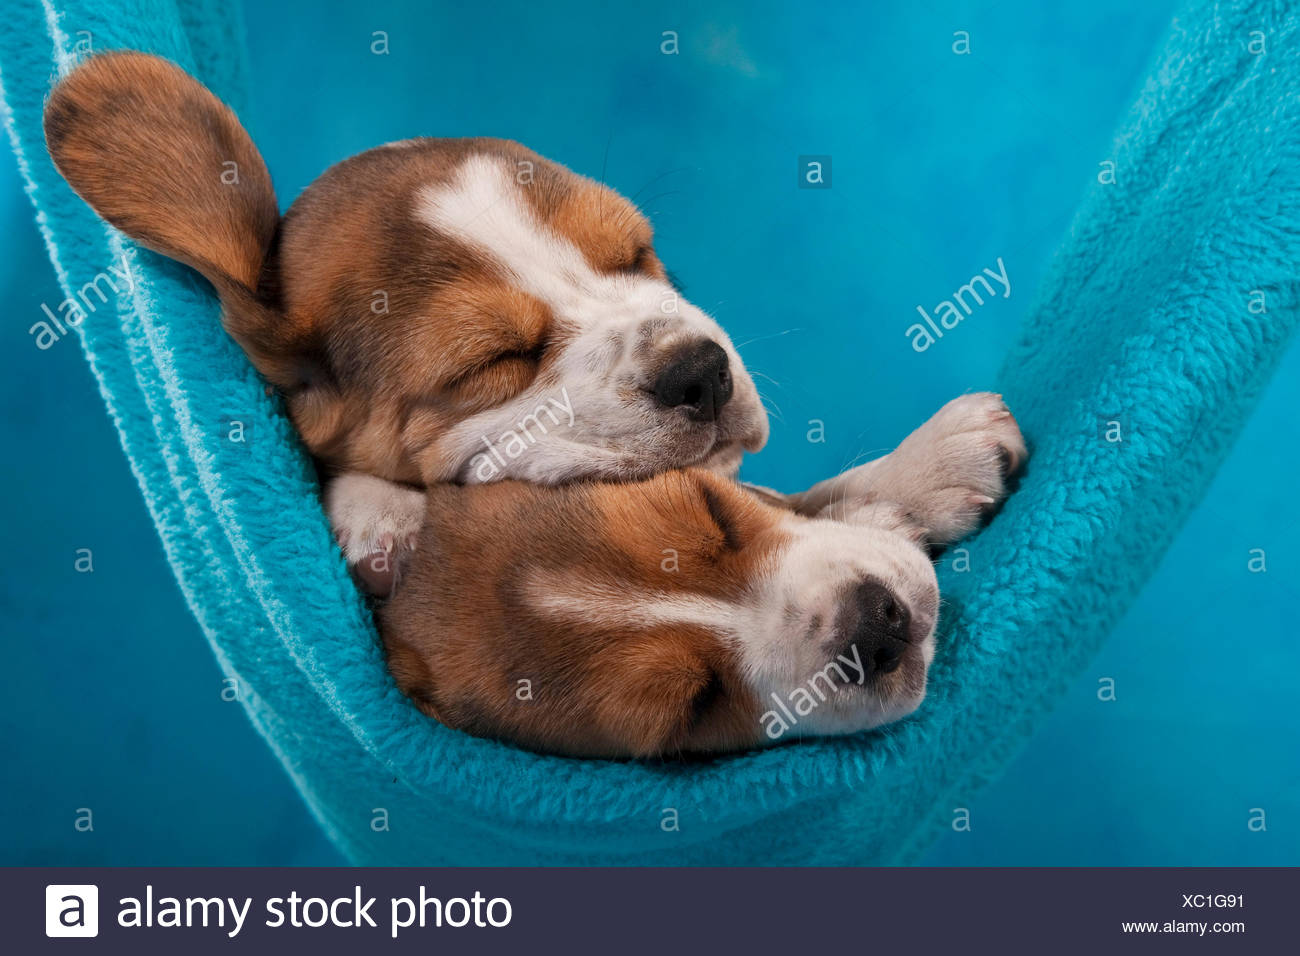 Two Beagle puppies sleeping in a hammock - Stock Image